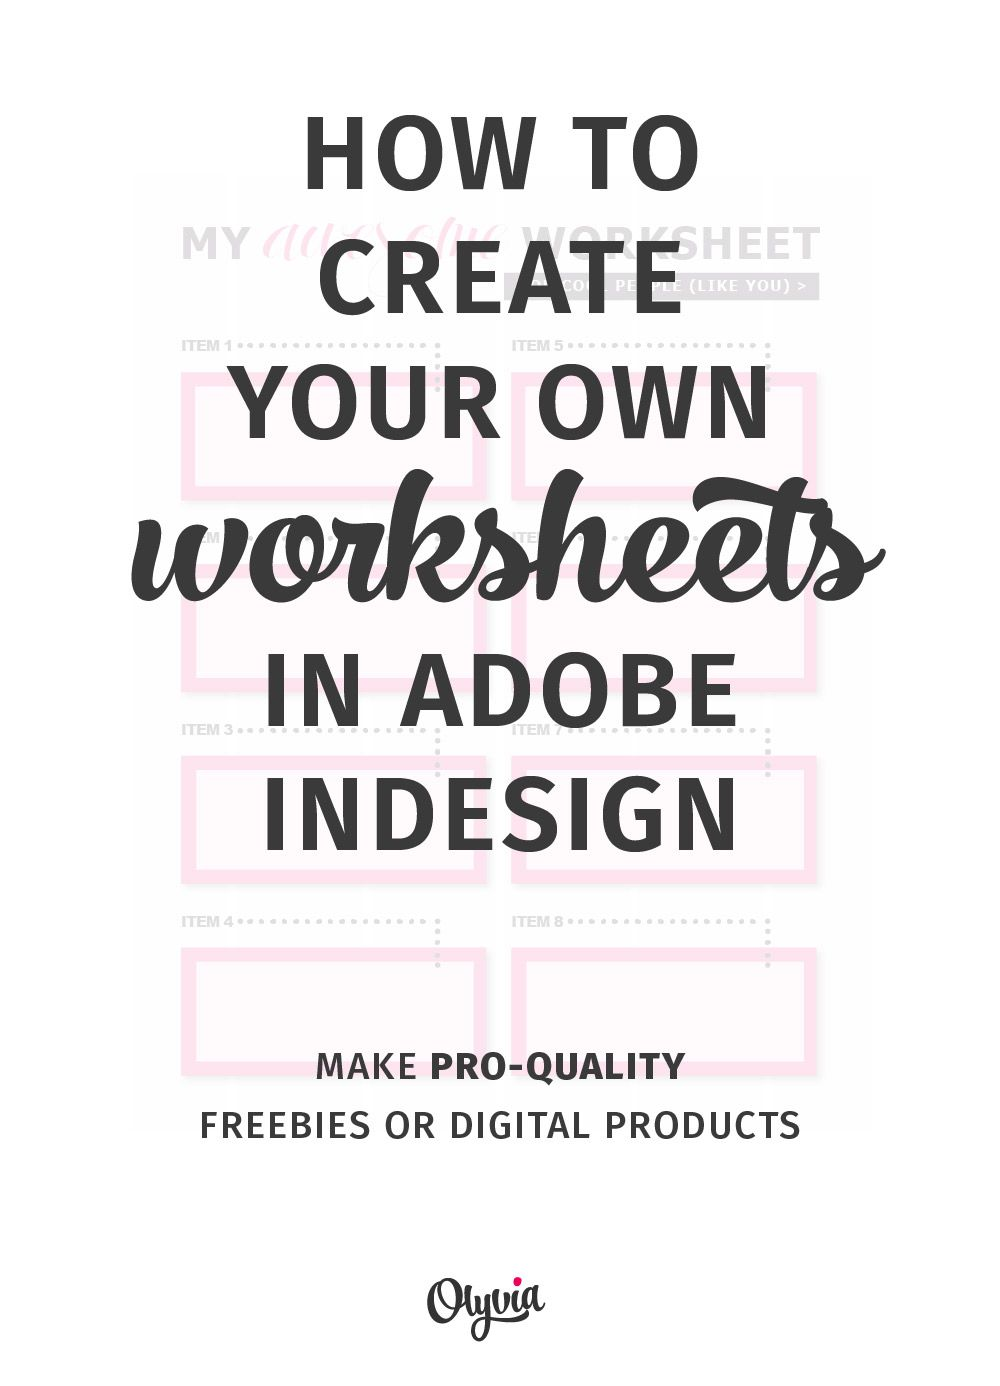 How To Create Your Own Worksheets In Adobe InDesign | Adobe indesign ...